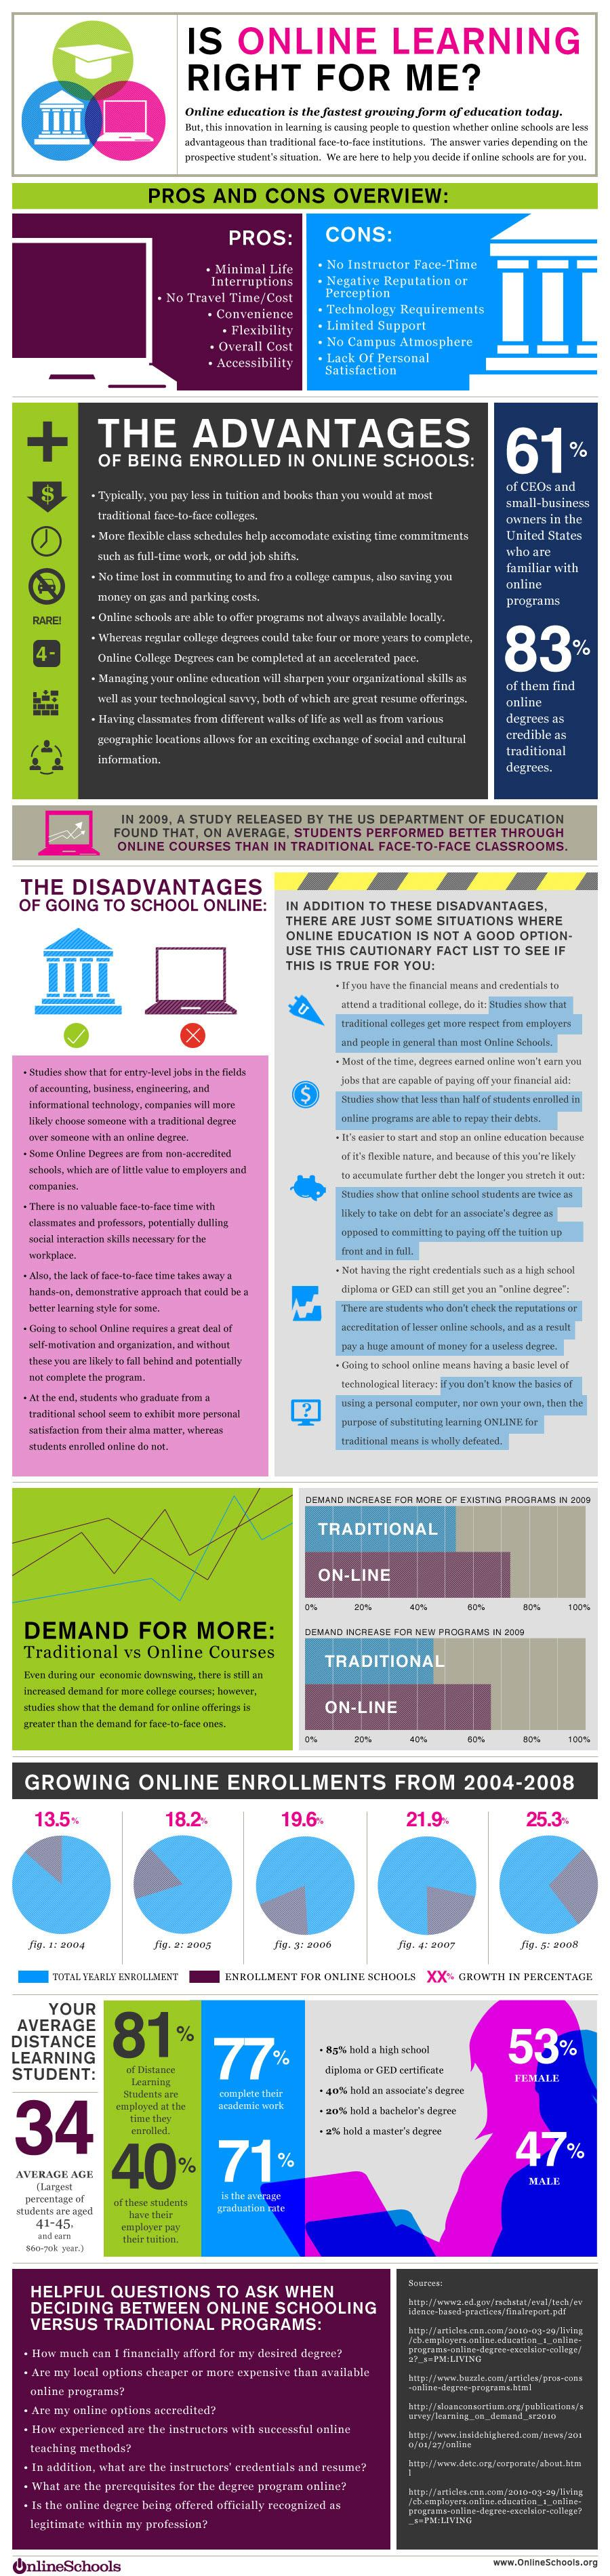 is-online-learning-right-for-me infographic